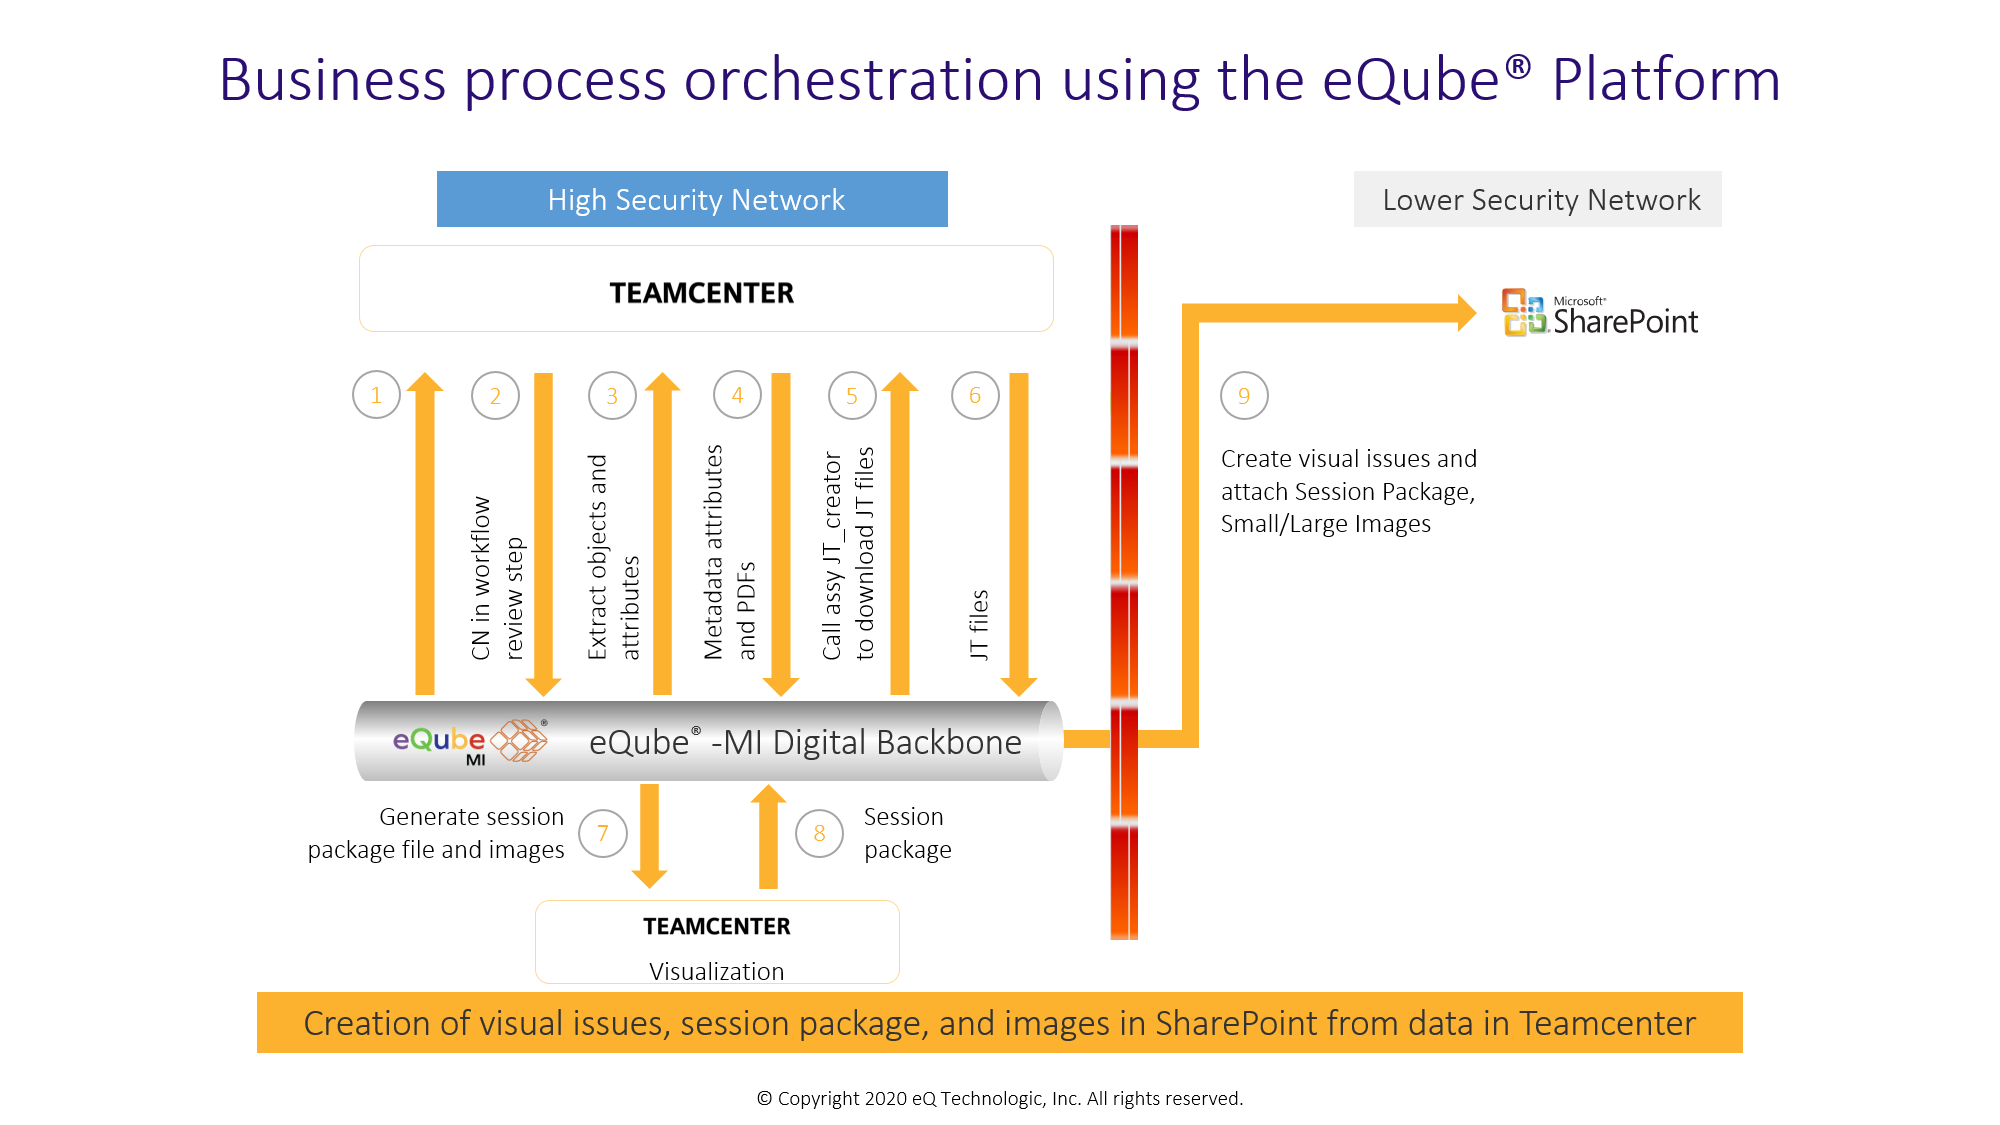 eQube-MI can orchestrate enterprise-wide business processes. With eQube-MI, transaction boundary for an interface can be established across applications, ensuring guaranteed consumption of each message in each participating application. It offers in-built capabilities of blocking transactions and auto retry to ensure the transactions are successful.